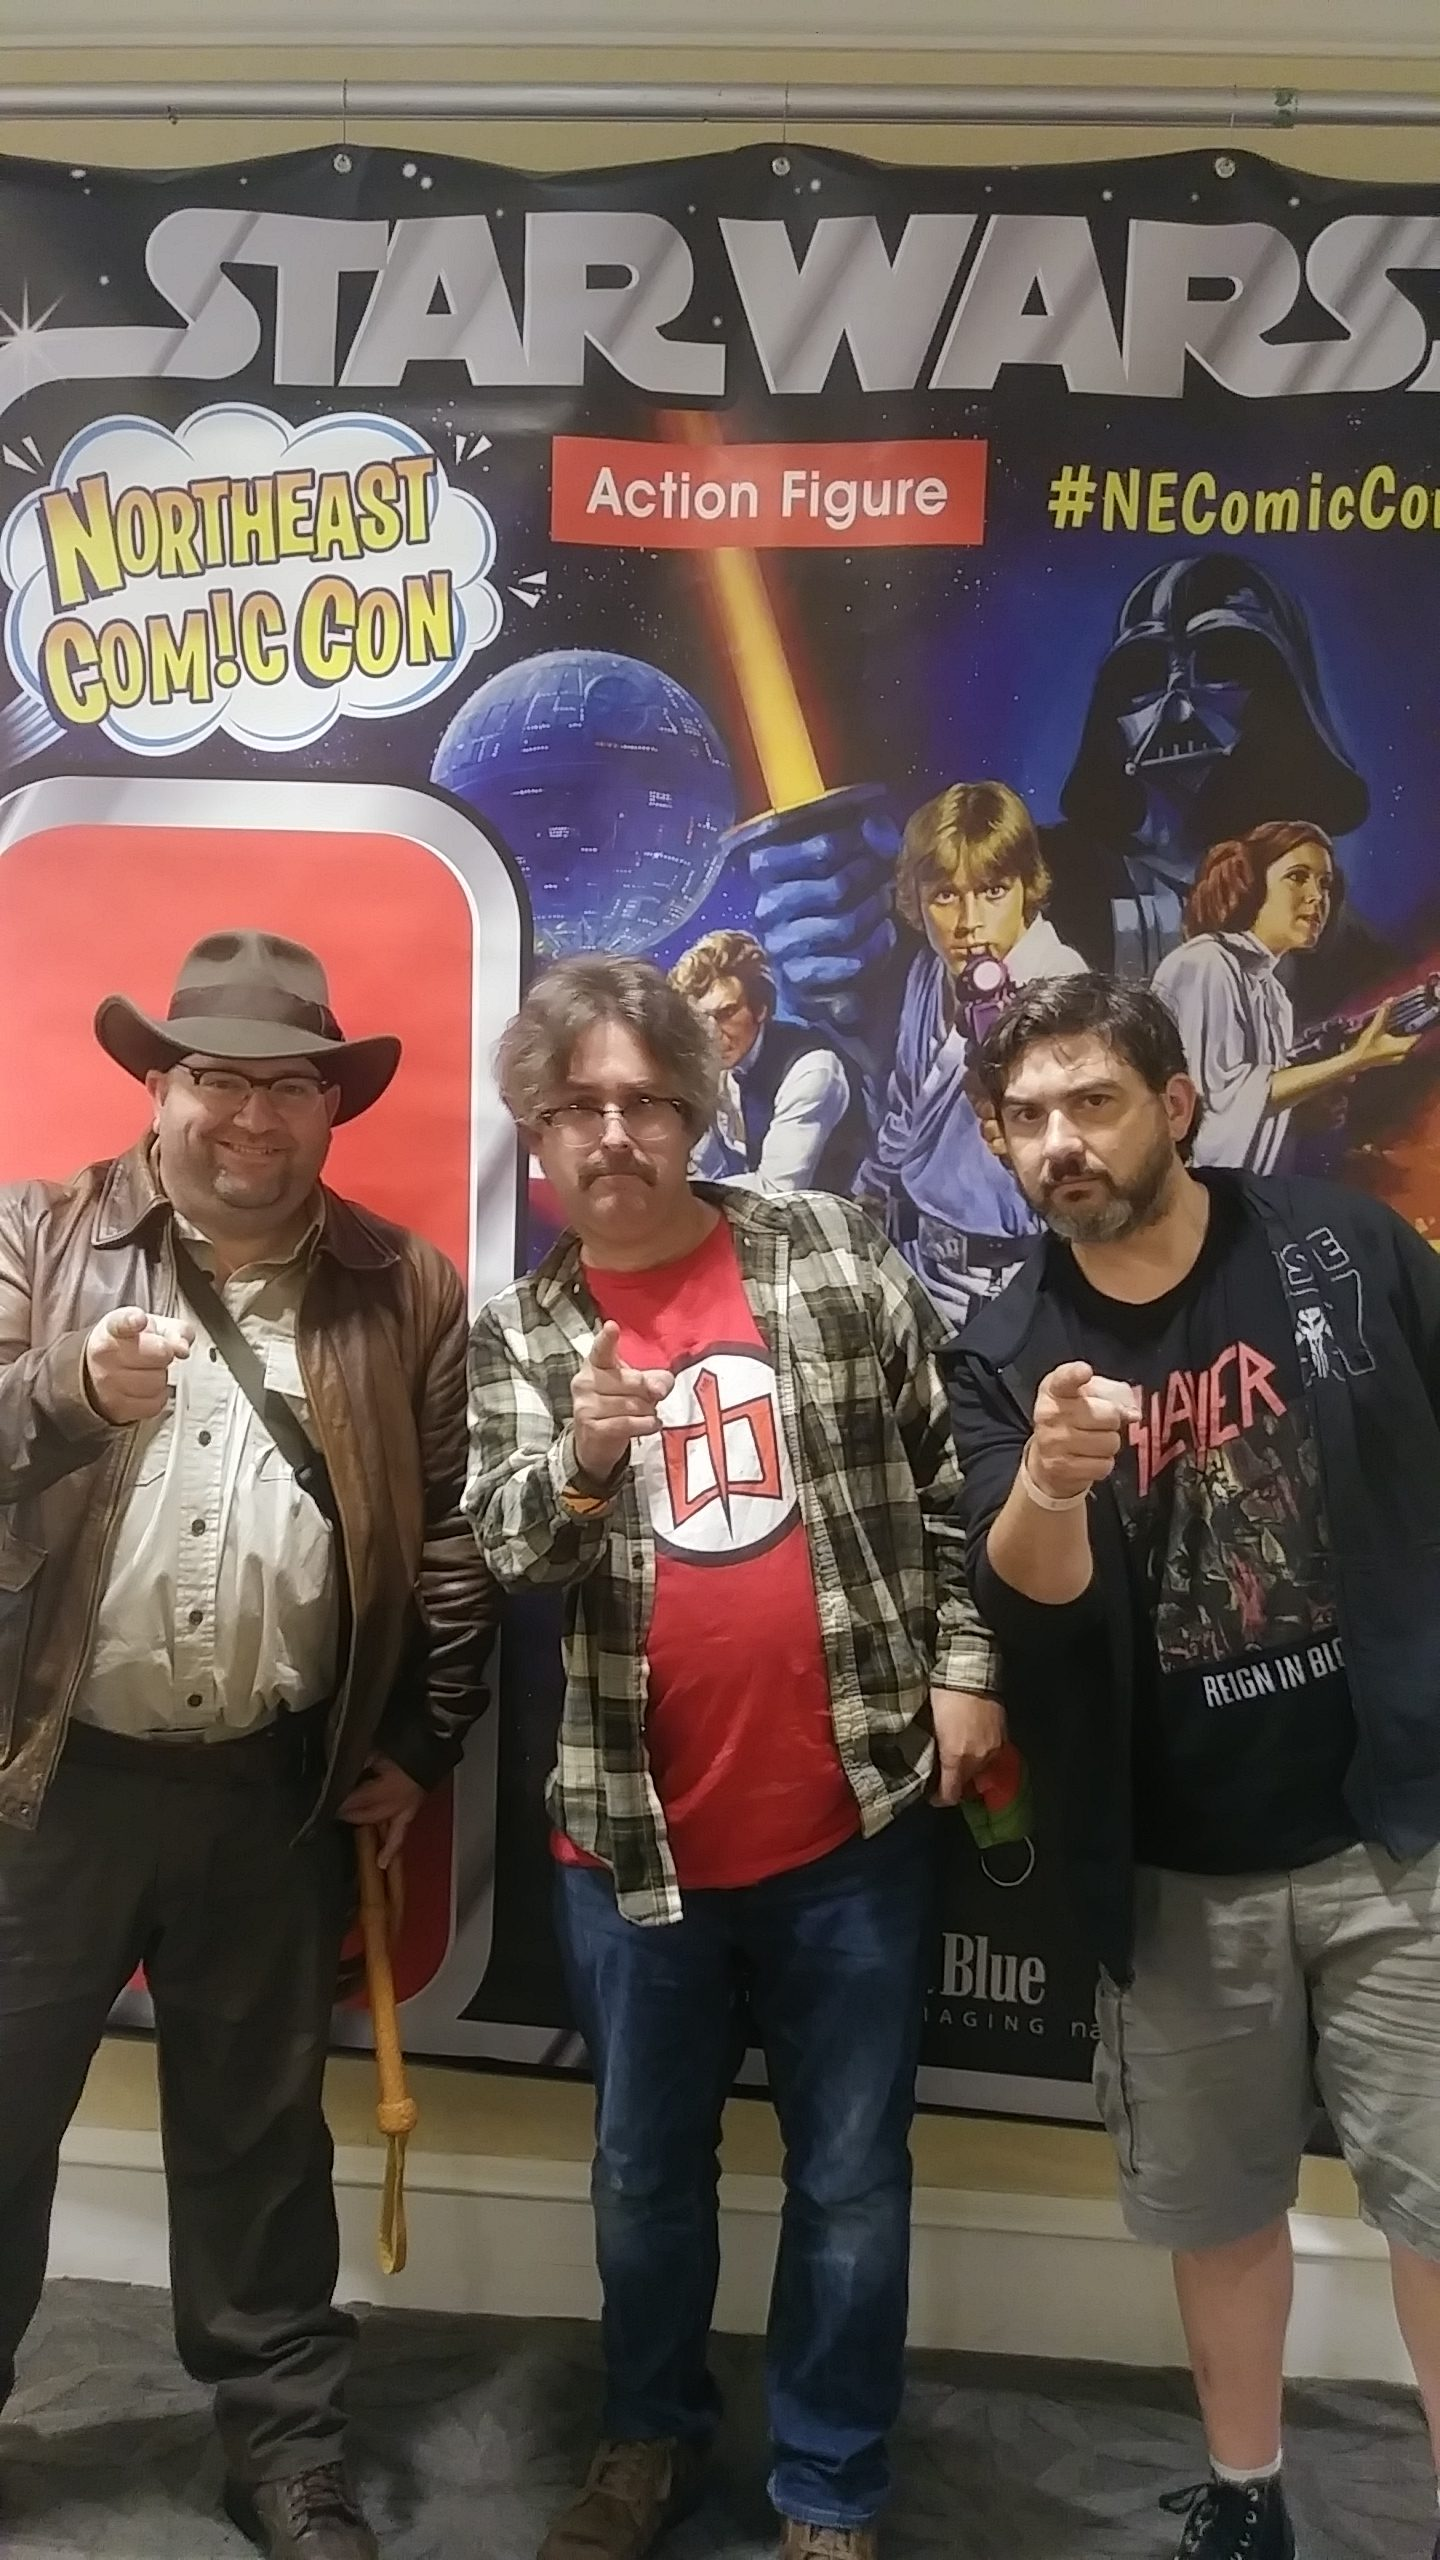 Full color, Brett and friends live from Northeast Comic Con weekend of July 4 2021